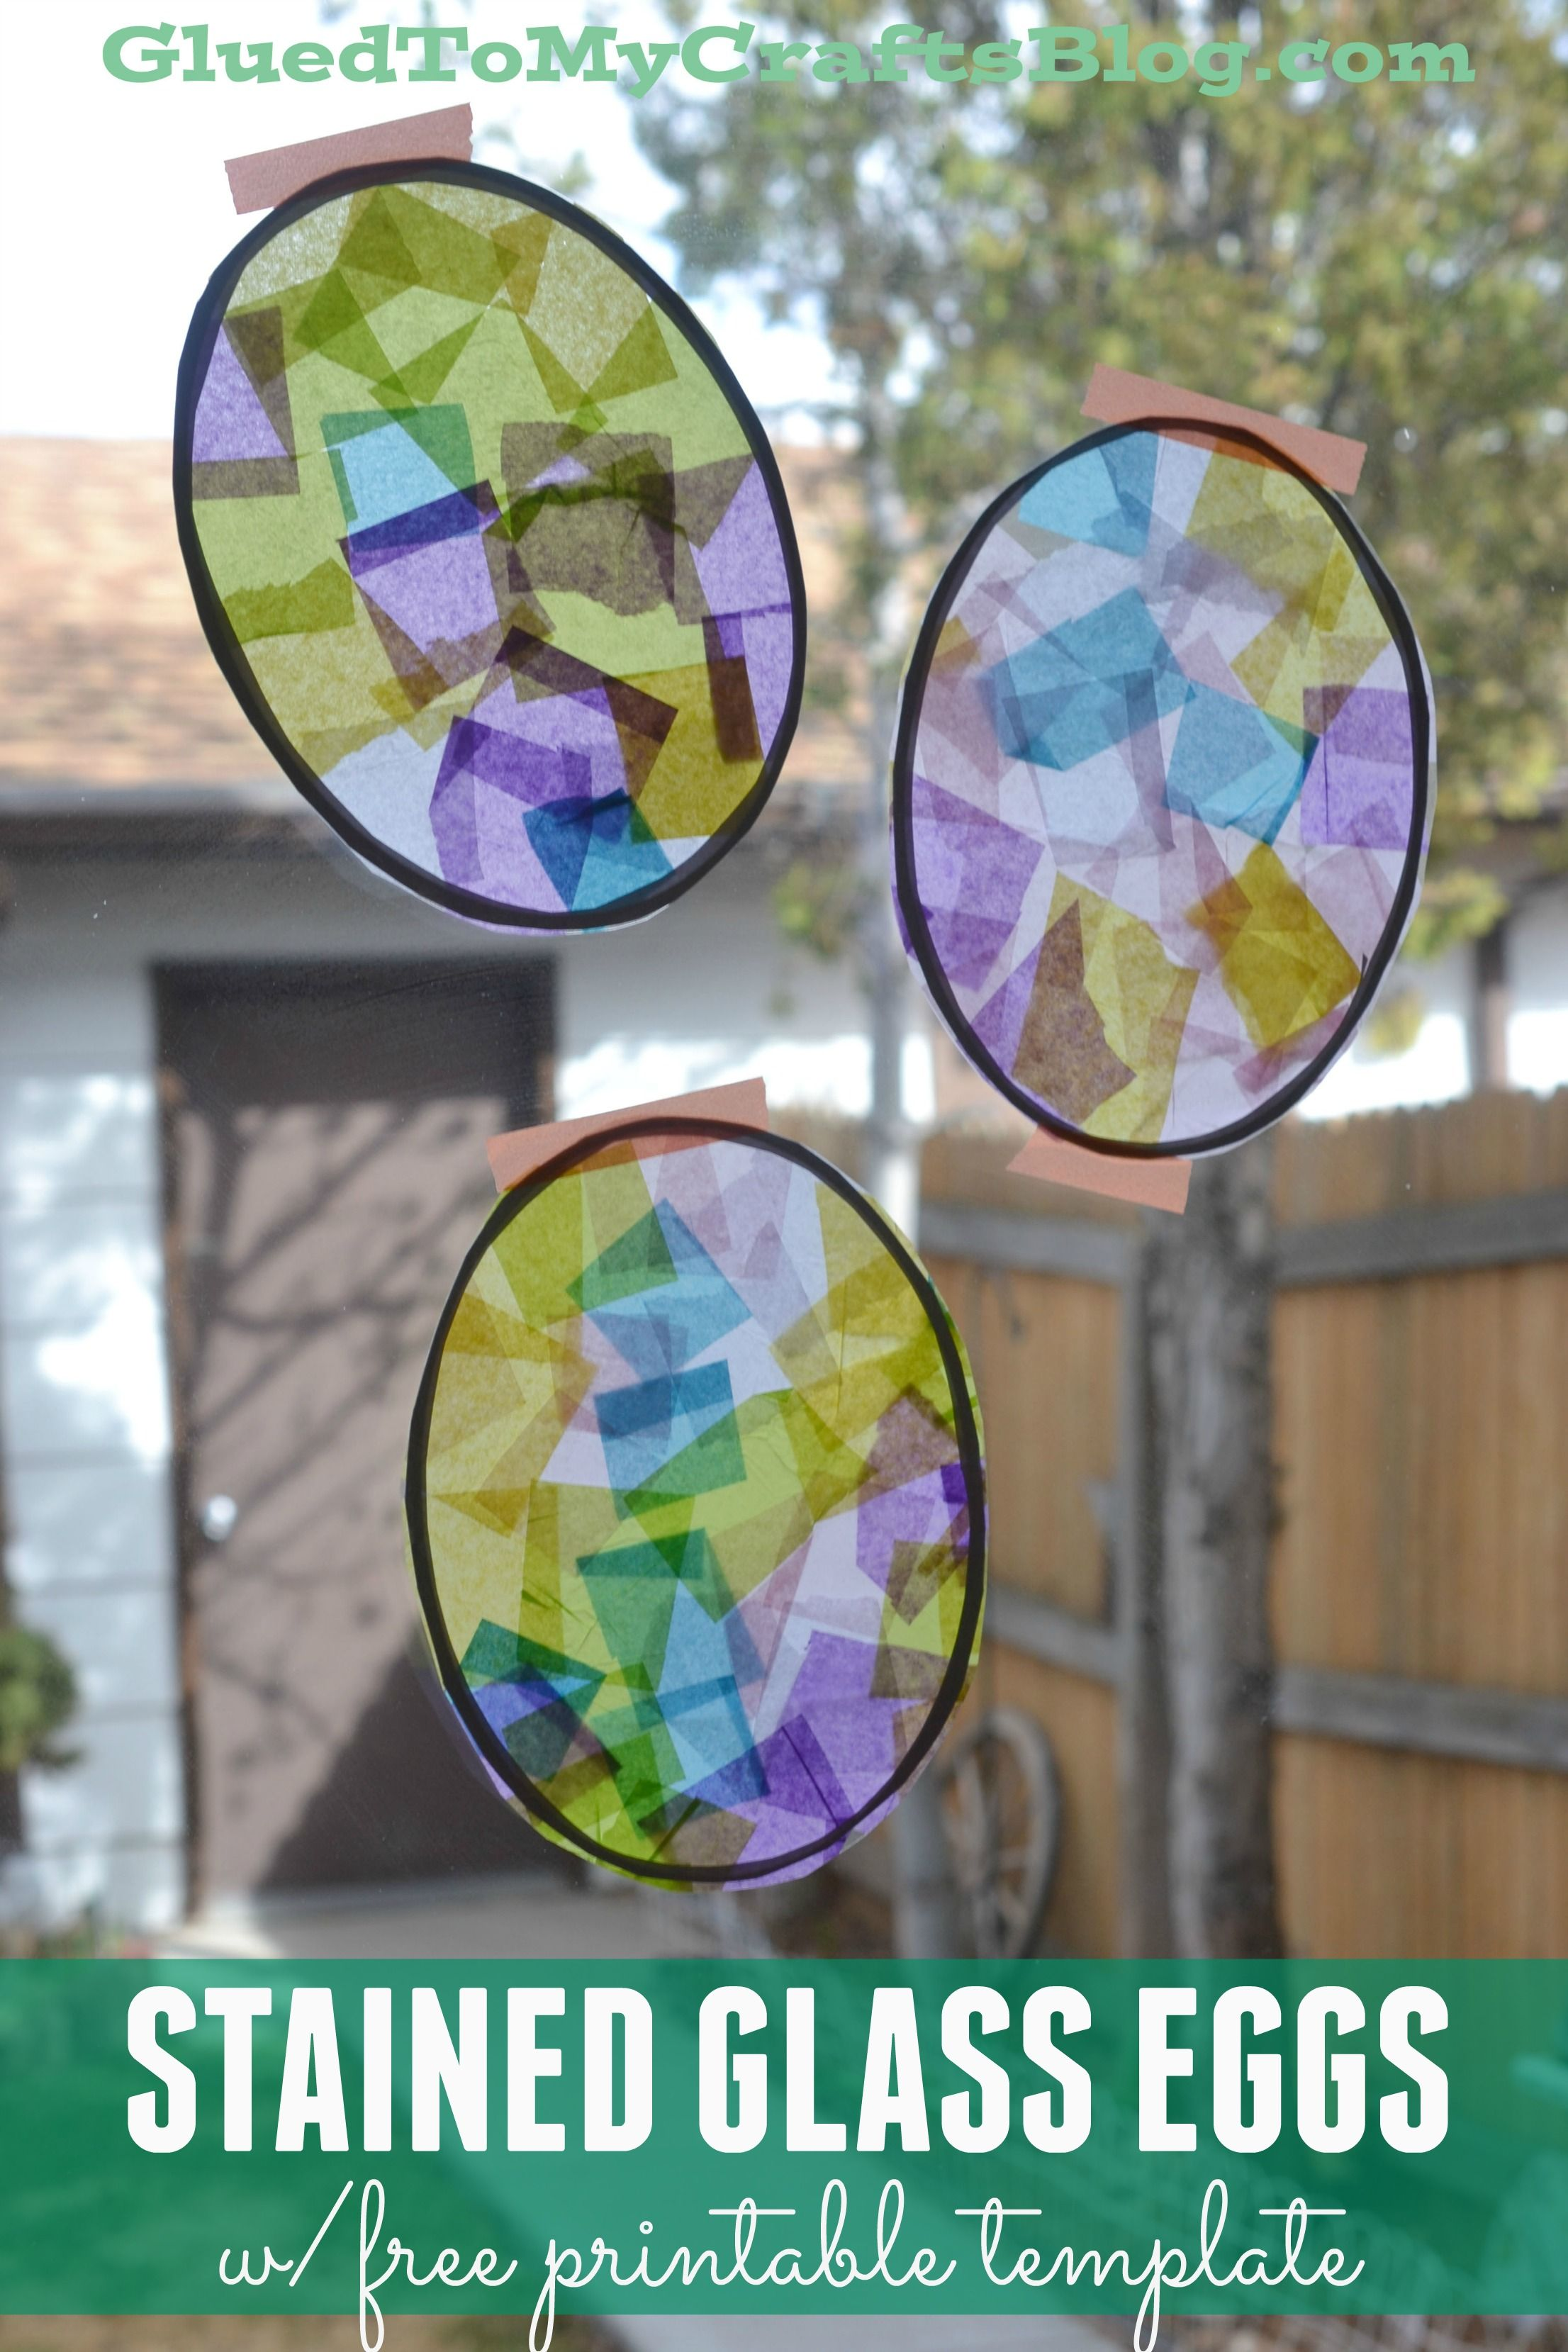 Stained Glass Eggs w/free printable template | Free printable ...